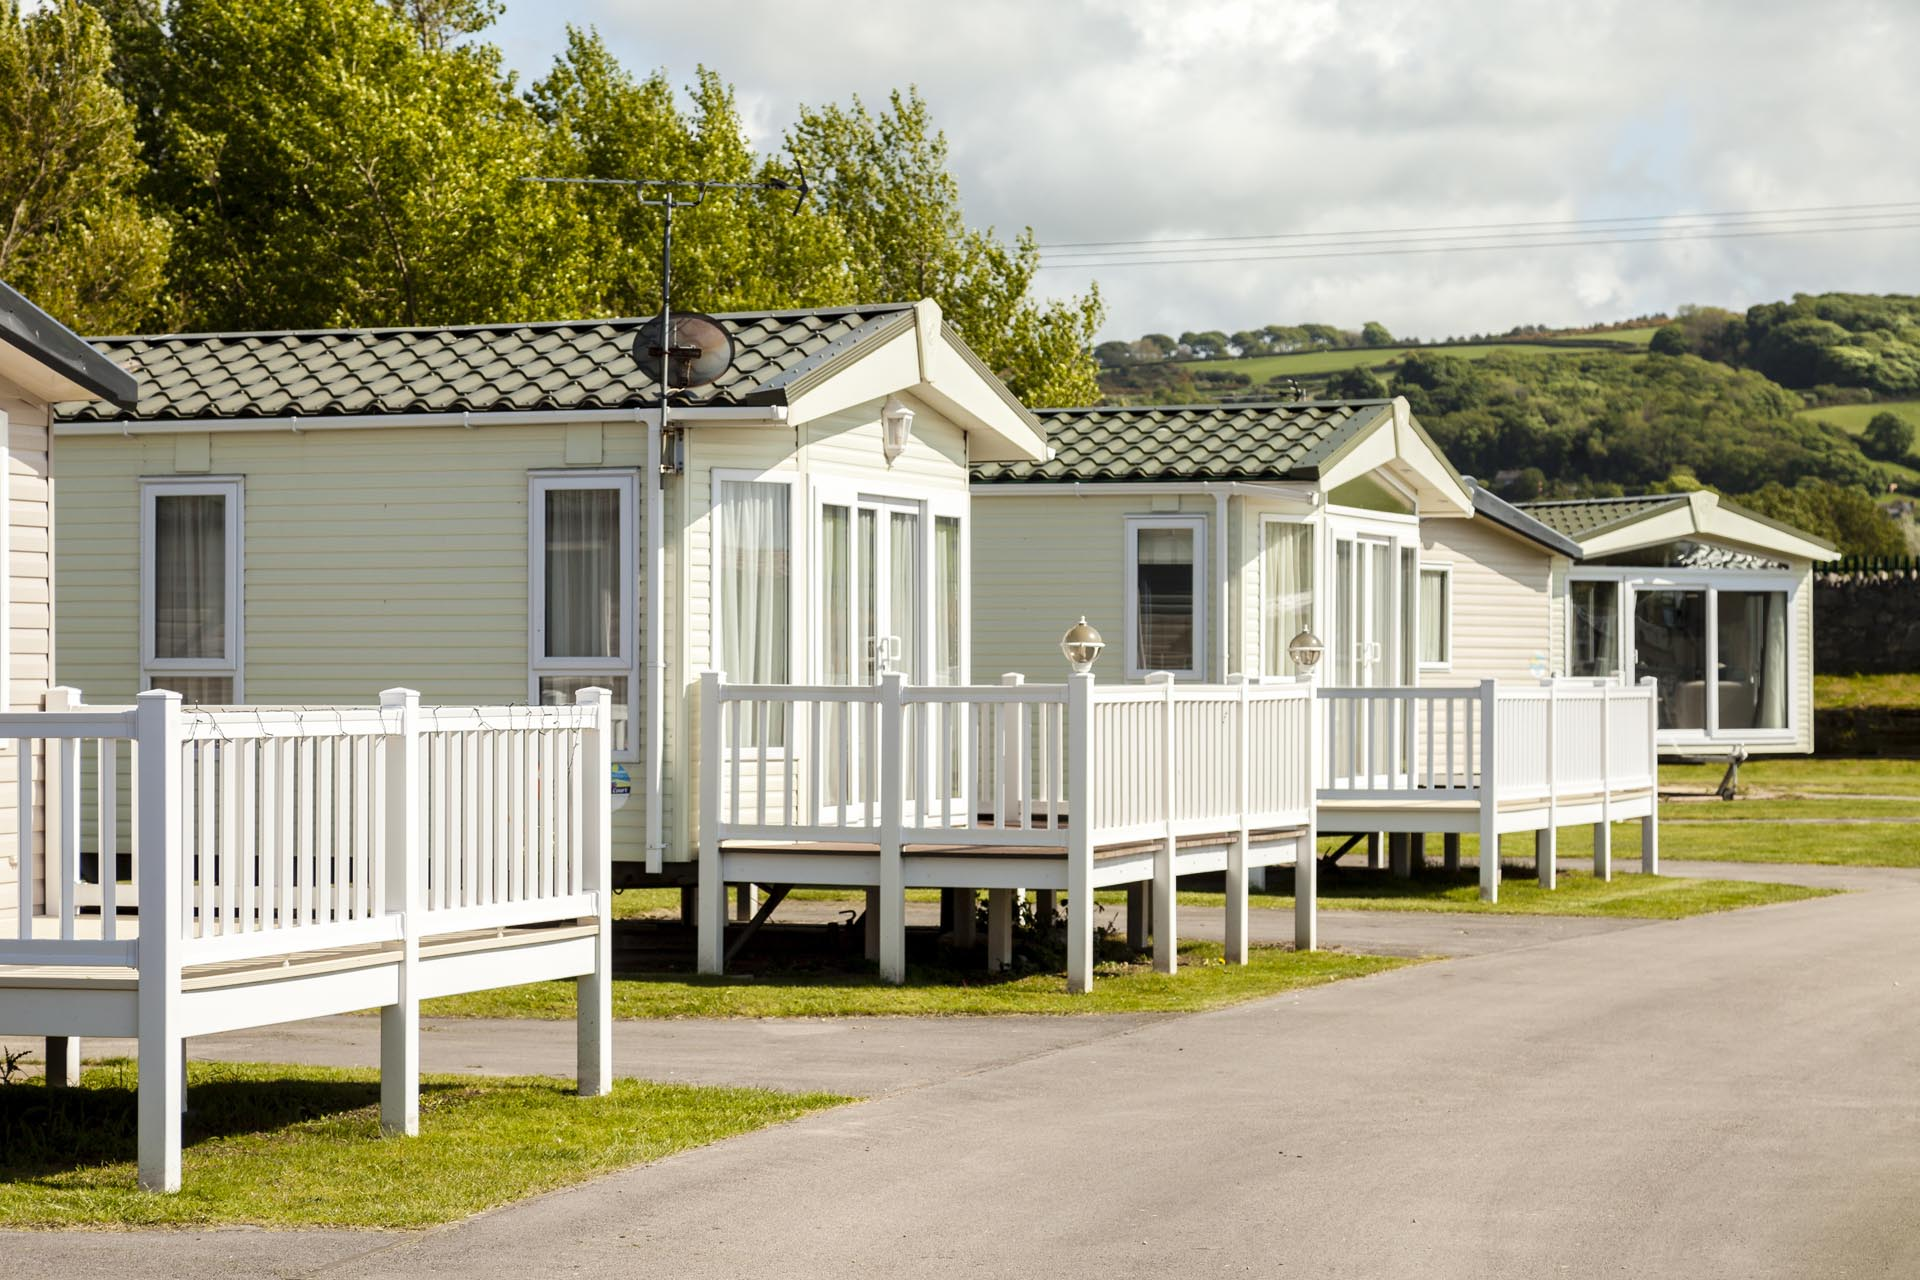 lodges-for-sale-isle-of-wight